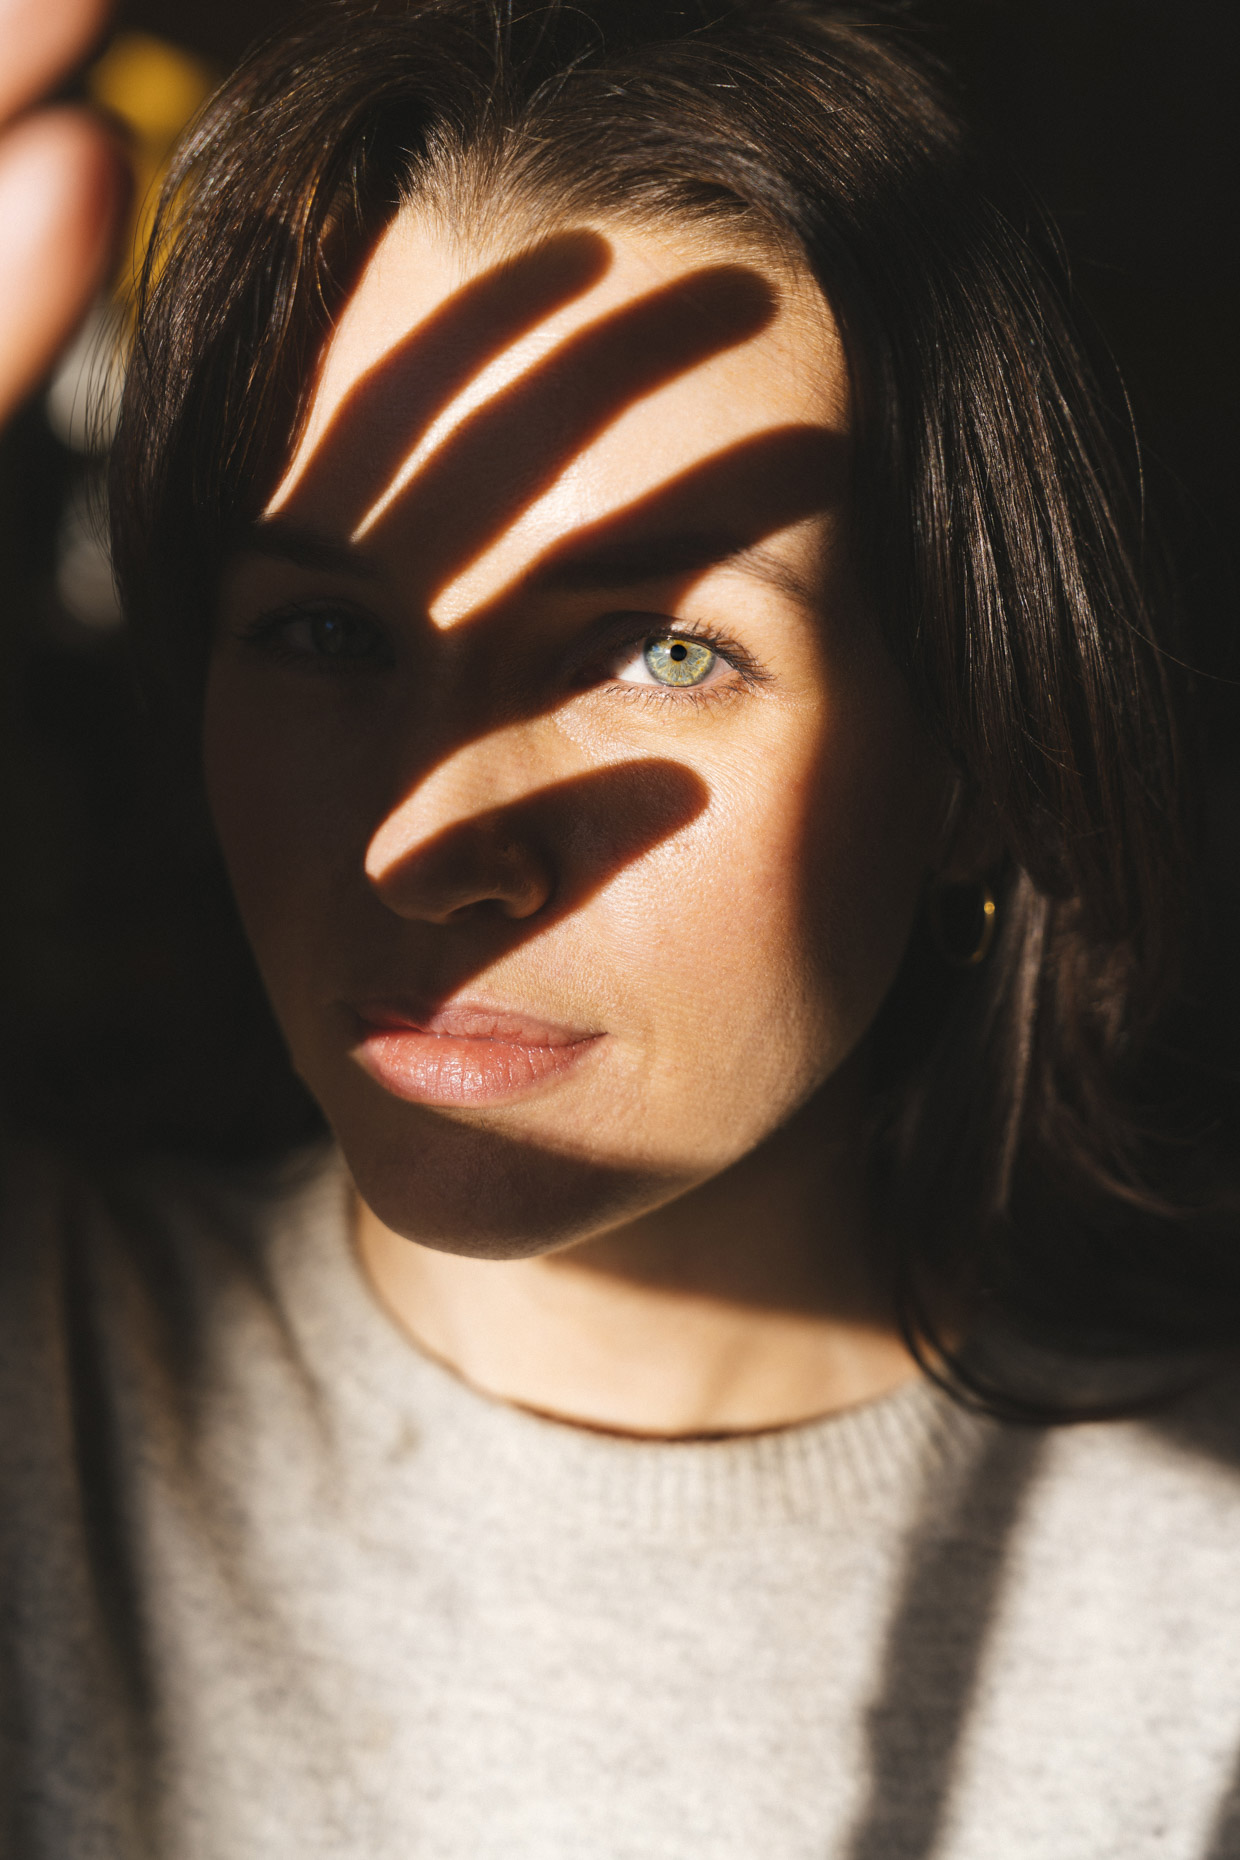 Woman with shadow of hand across face